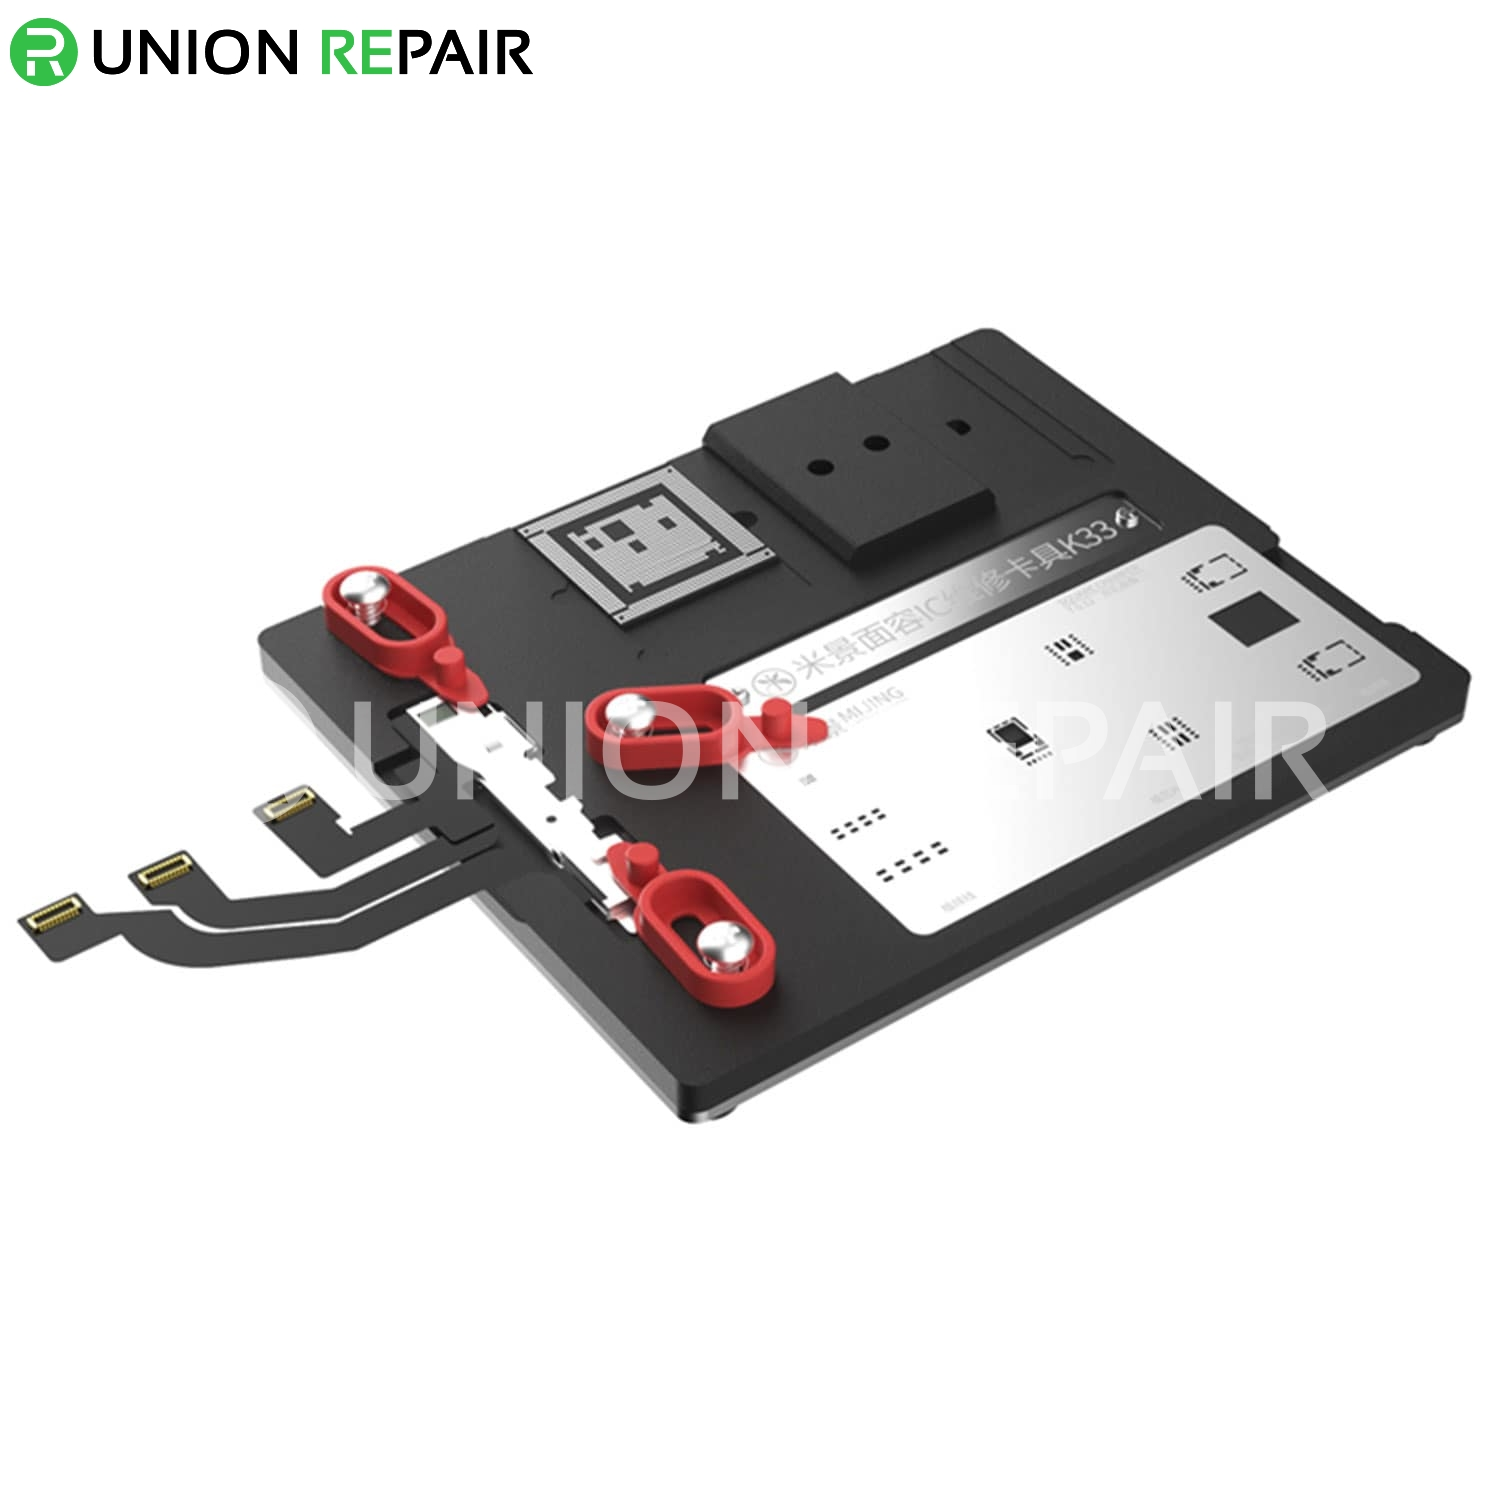 MJ K33 Face IC Repair Fixture for iPhone X-11 Pro Max